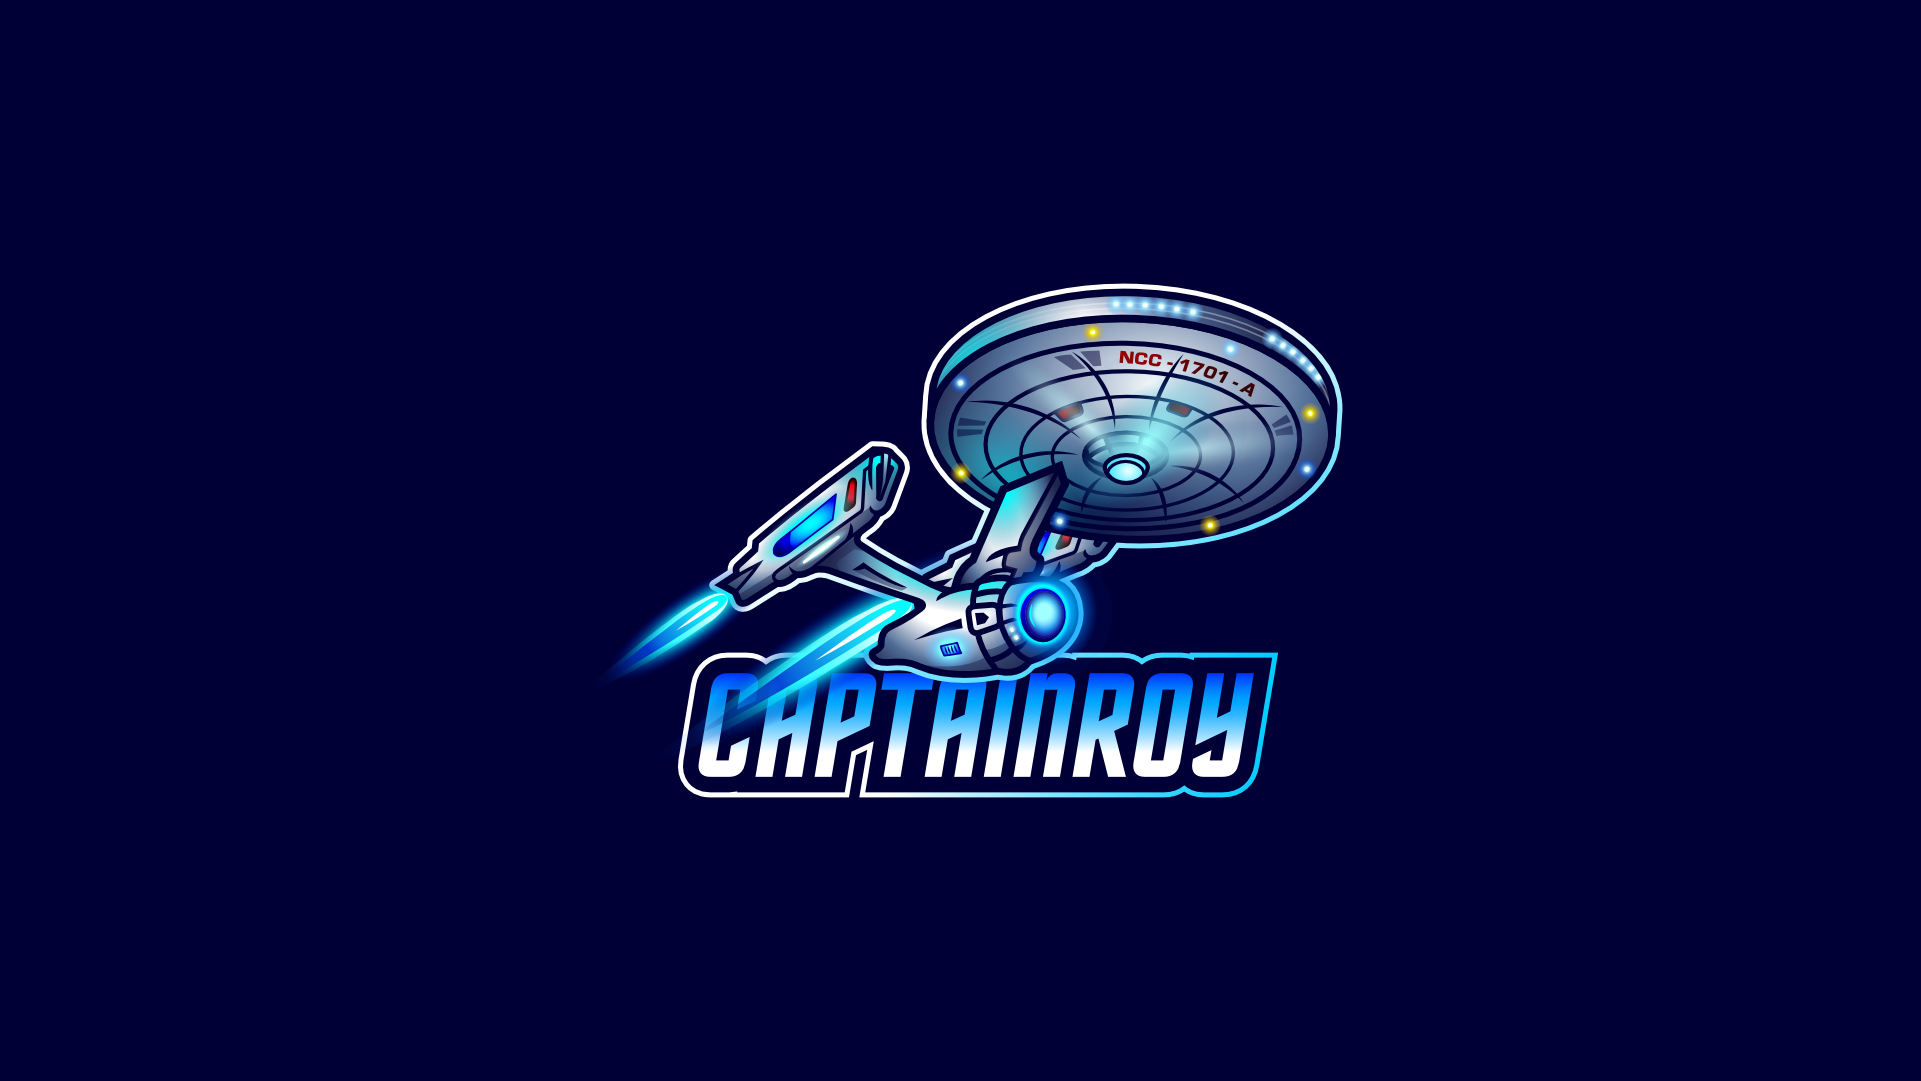 Illustarted star trek ship logo for a video game streamer